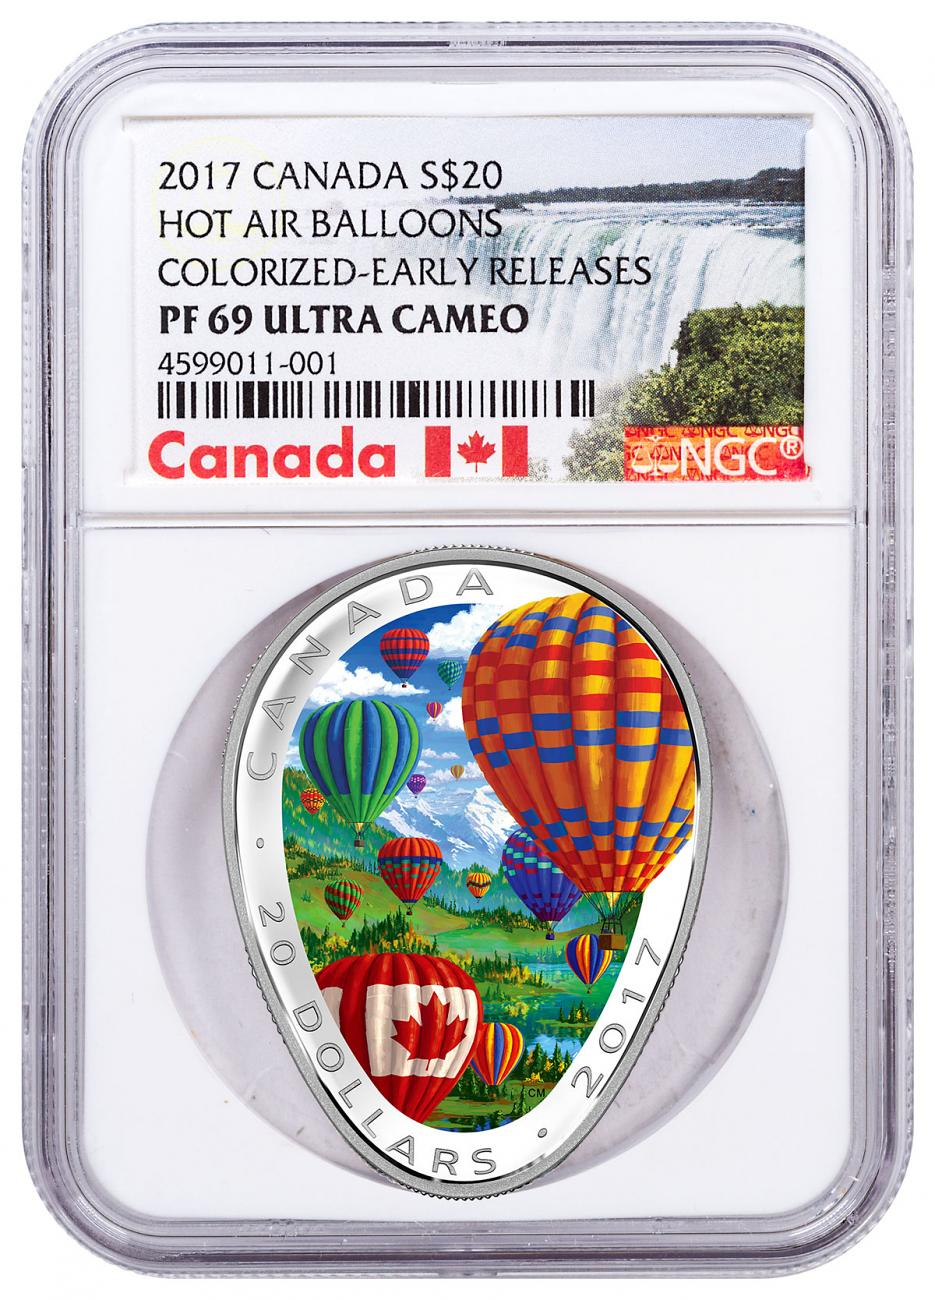 2017 Canada Hot Air Balloon Shaped 1 oz Silver Colorized Proof $20 Coin NGC PF69 UC ER Exclusive Canada Label